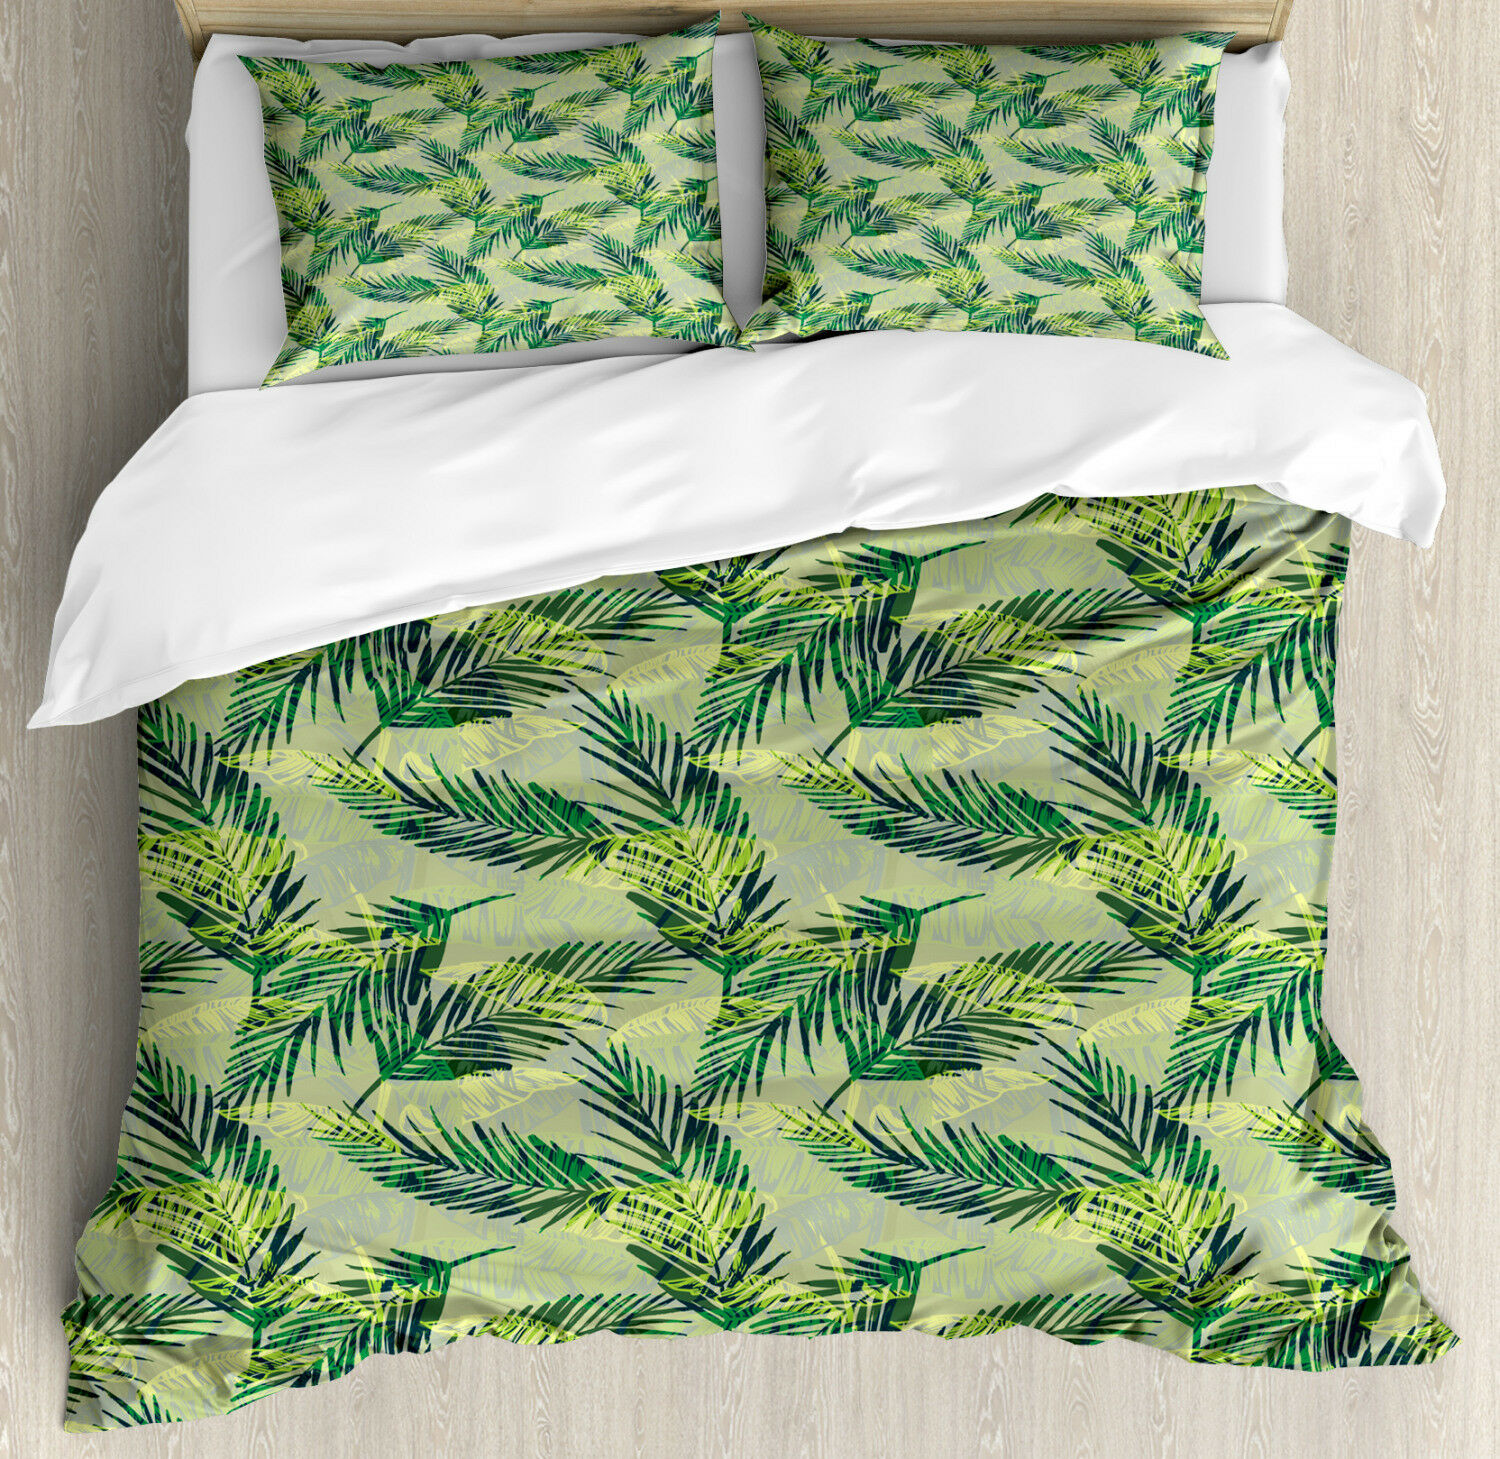 Palm Leaf Duvet Cover Set with Pillow Shams Rainforest Foliage Print